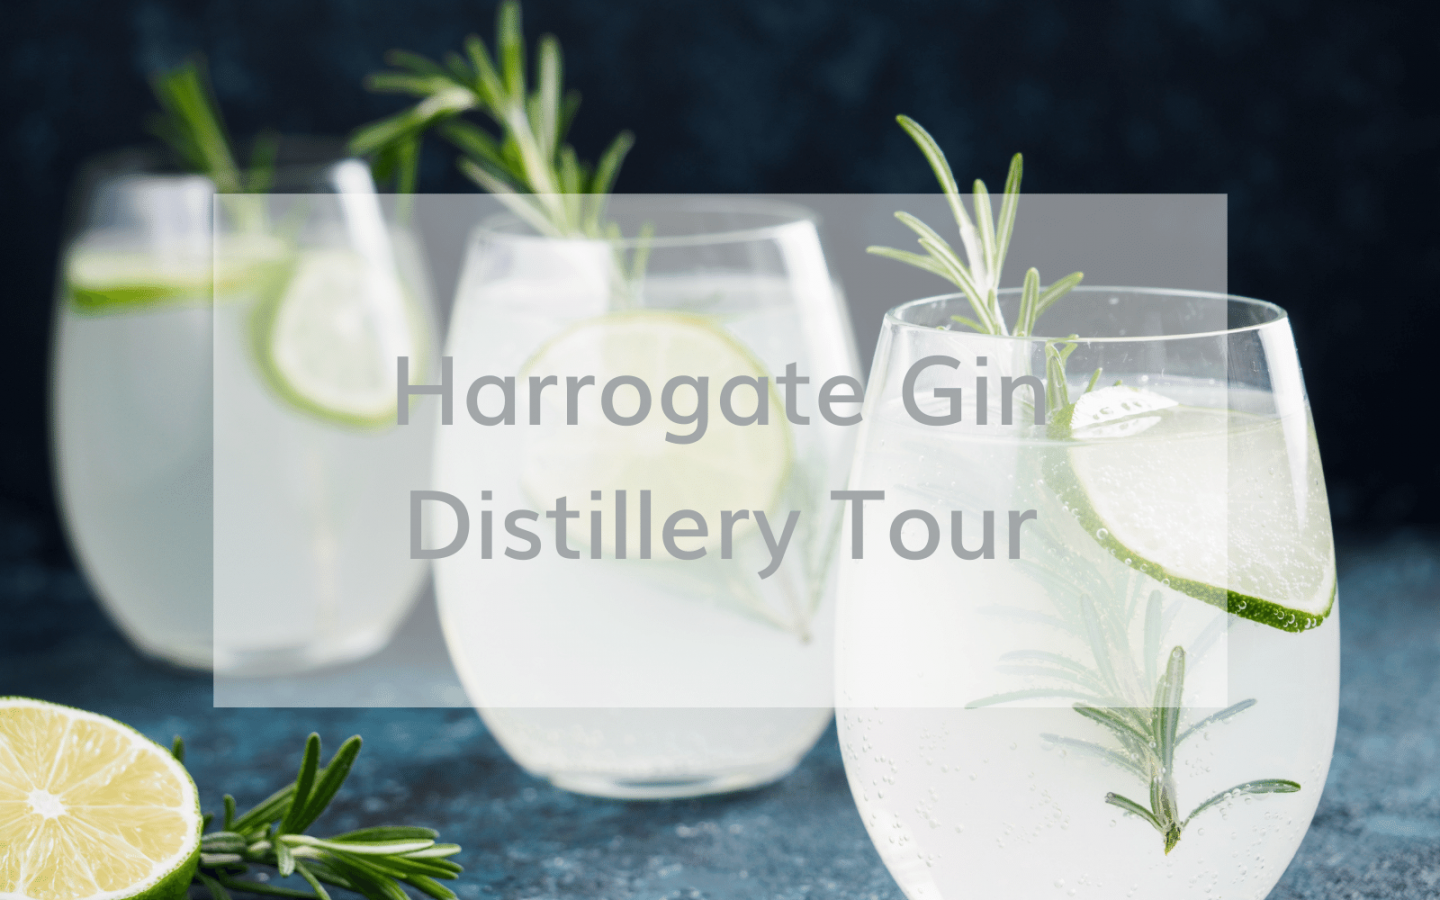 Harrogate gin distillery tour review